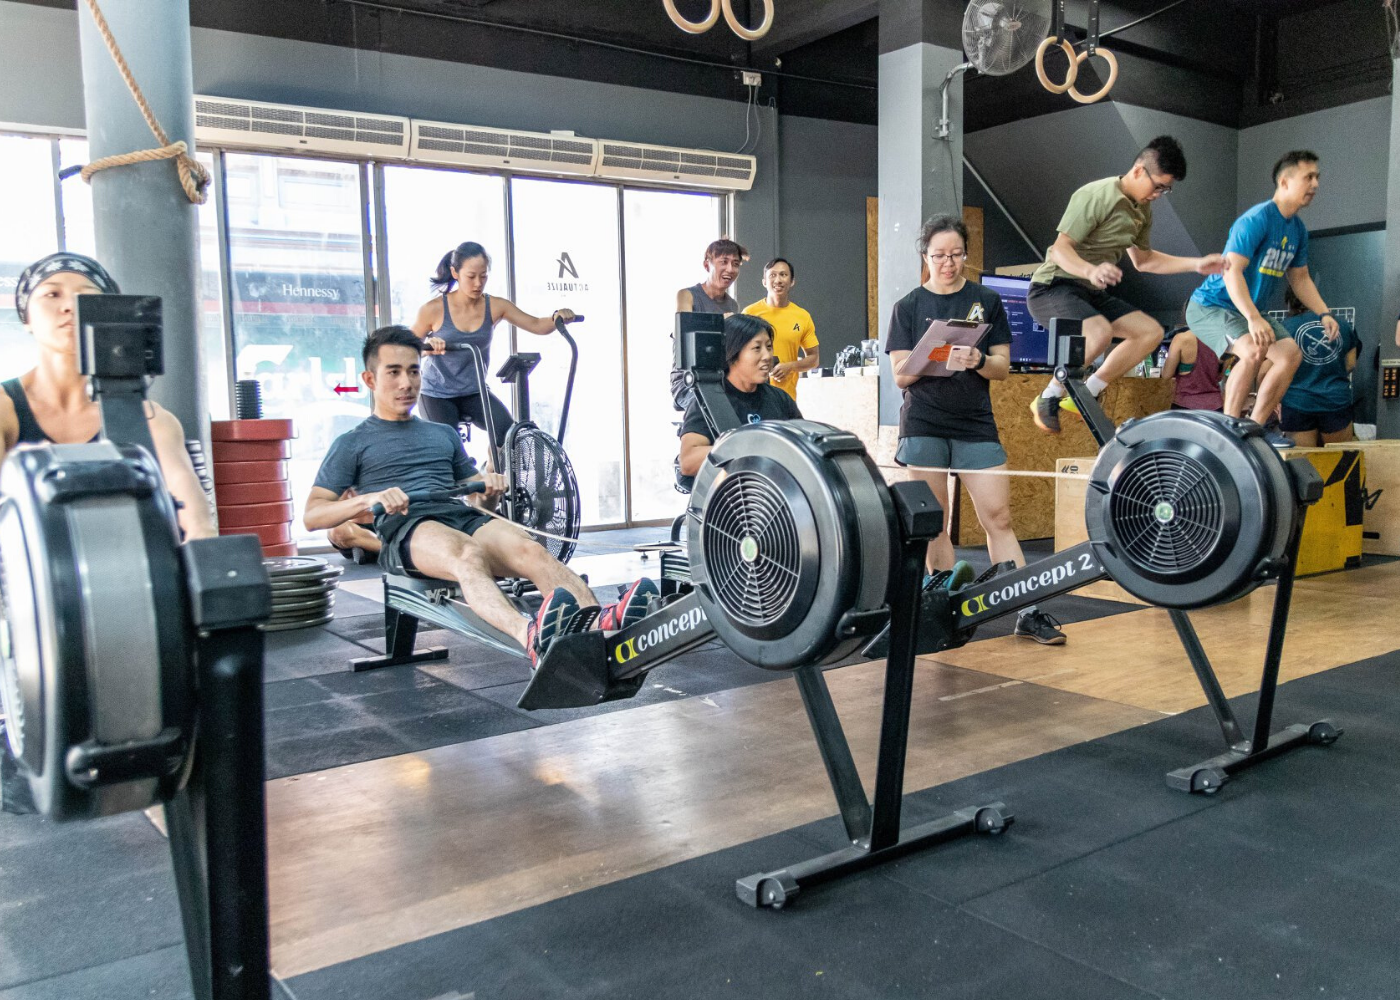 Best gyms: Actualize Crossfit